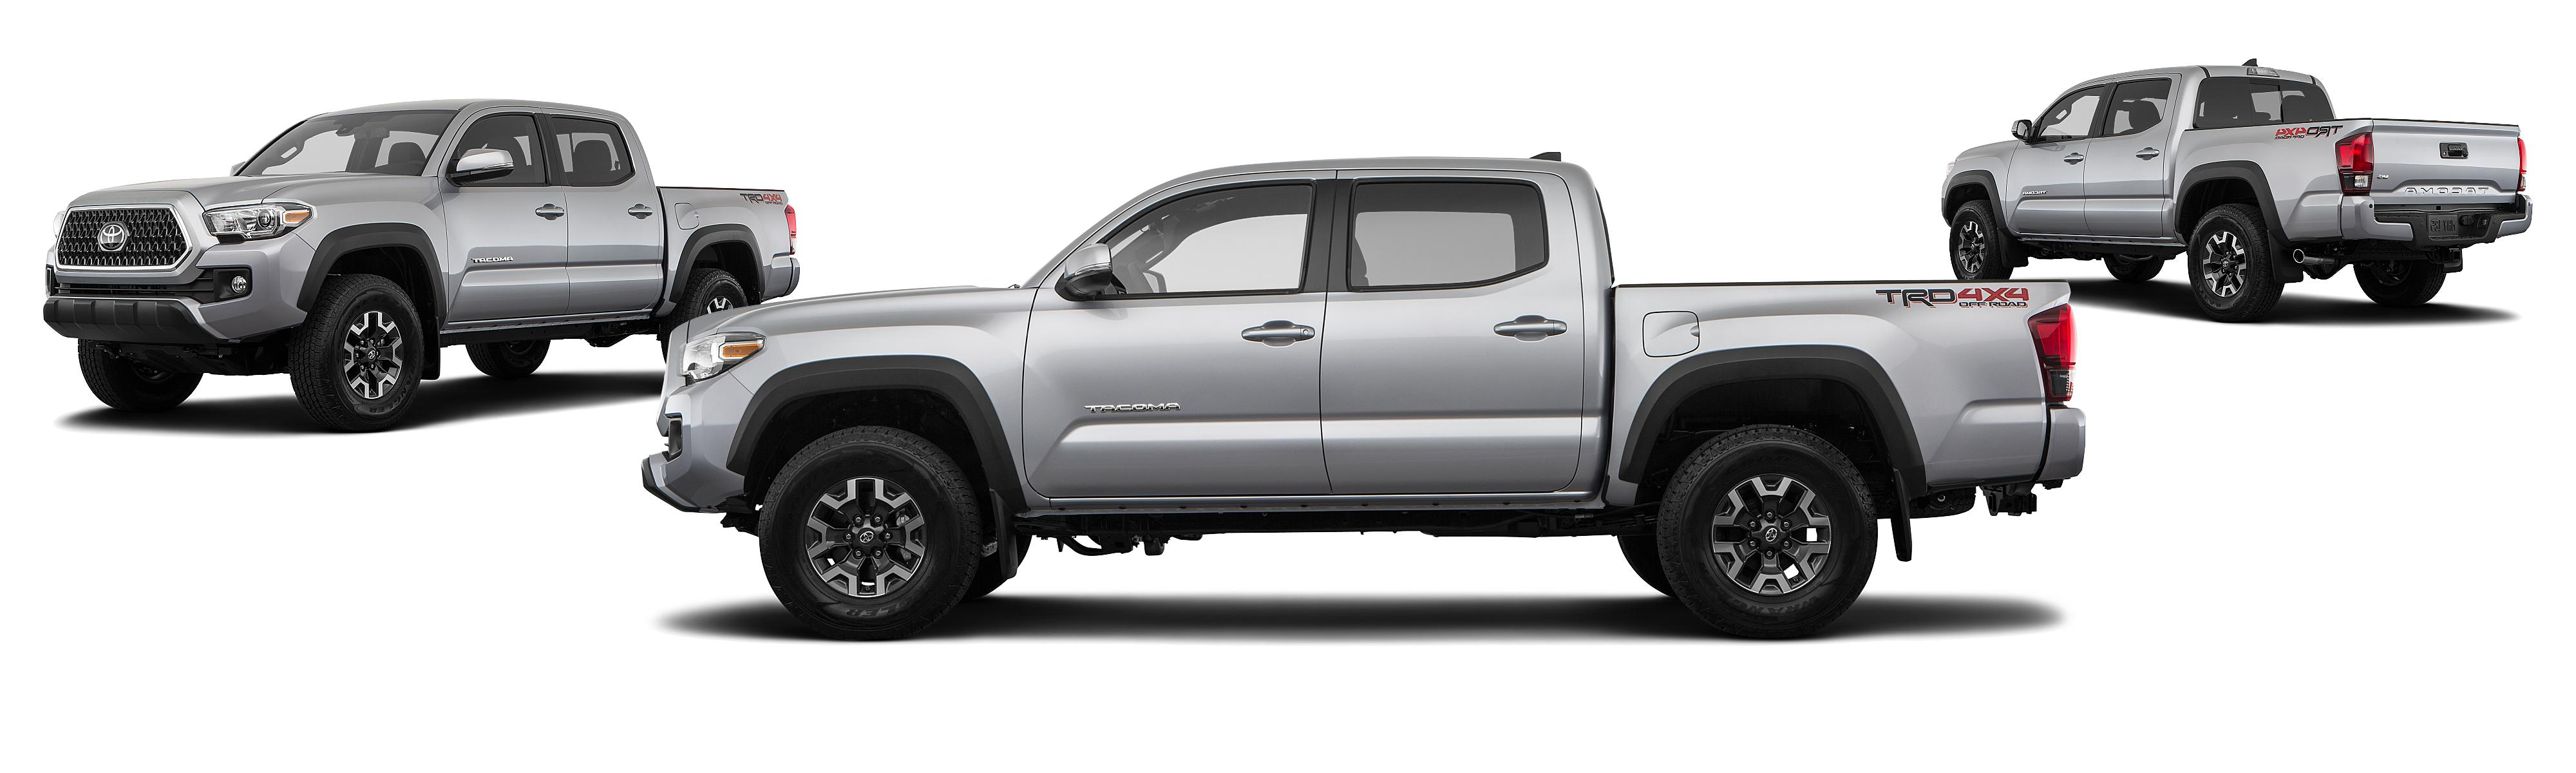 2018 toyota tacoma 4x4 sr v6 4dr double cab 5 0 ft sb research rh groovecar com